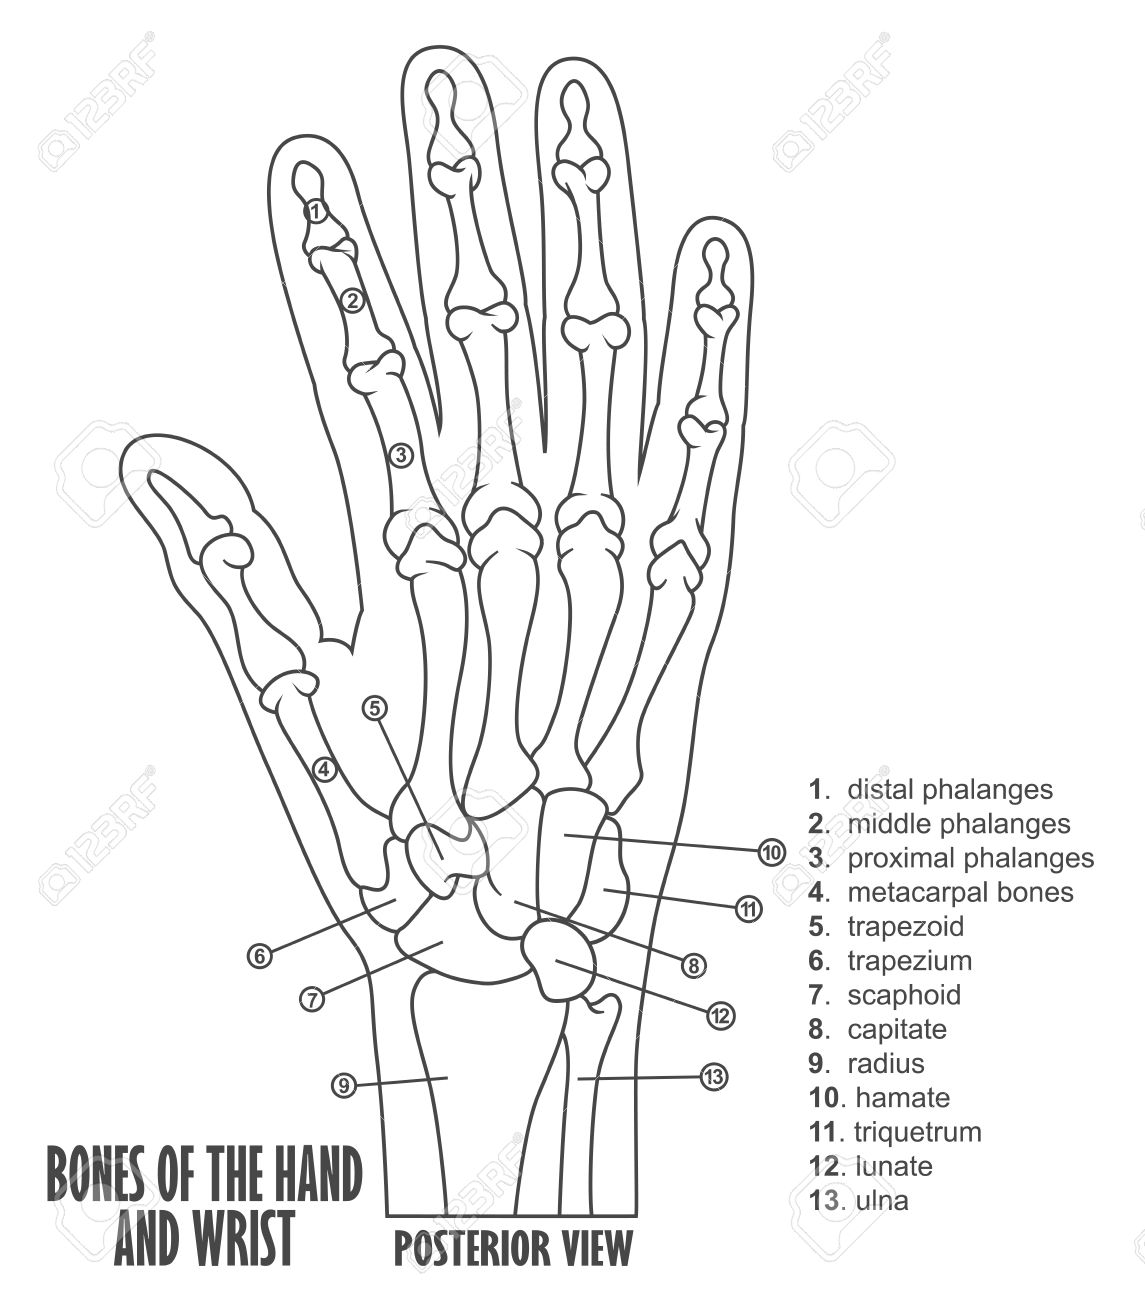 Bones Of The Hand And Wrist Anatomy Royalty Free Cliparts, Vectors ...